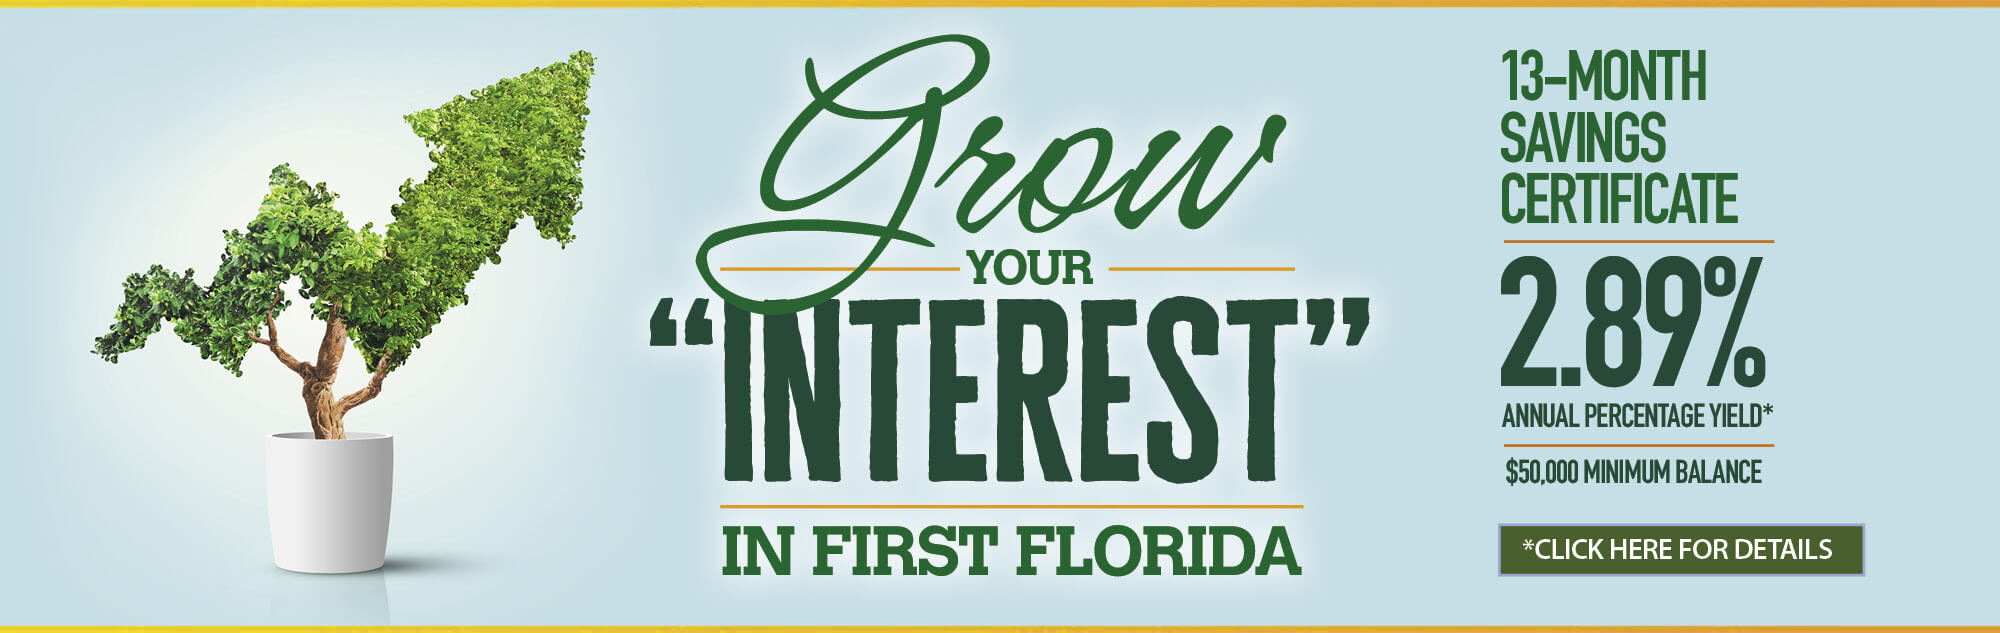 Grow your interest in First Florida  13-Month Savings Certificate. 2.89% annual percentage yield. click for details